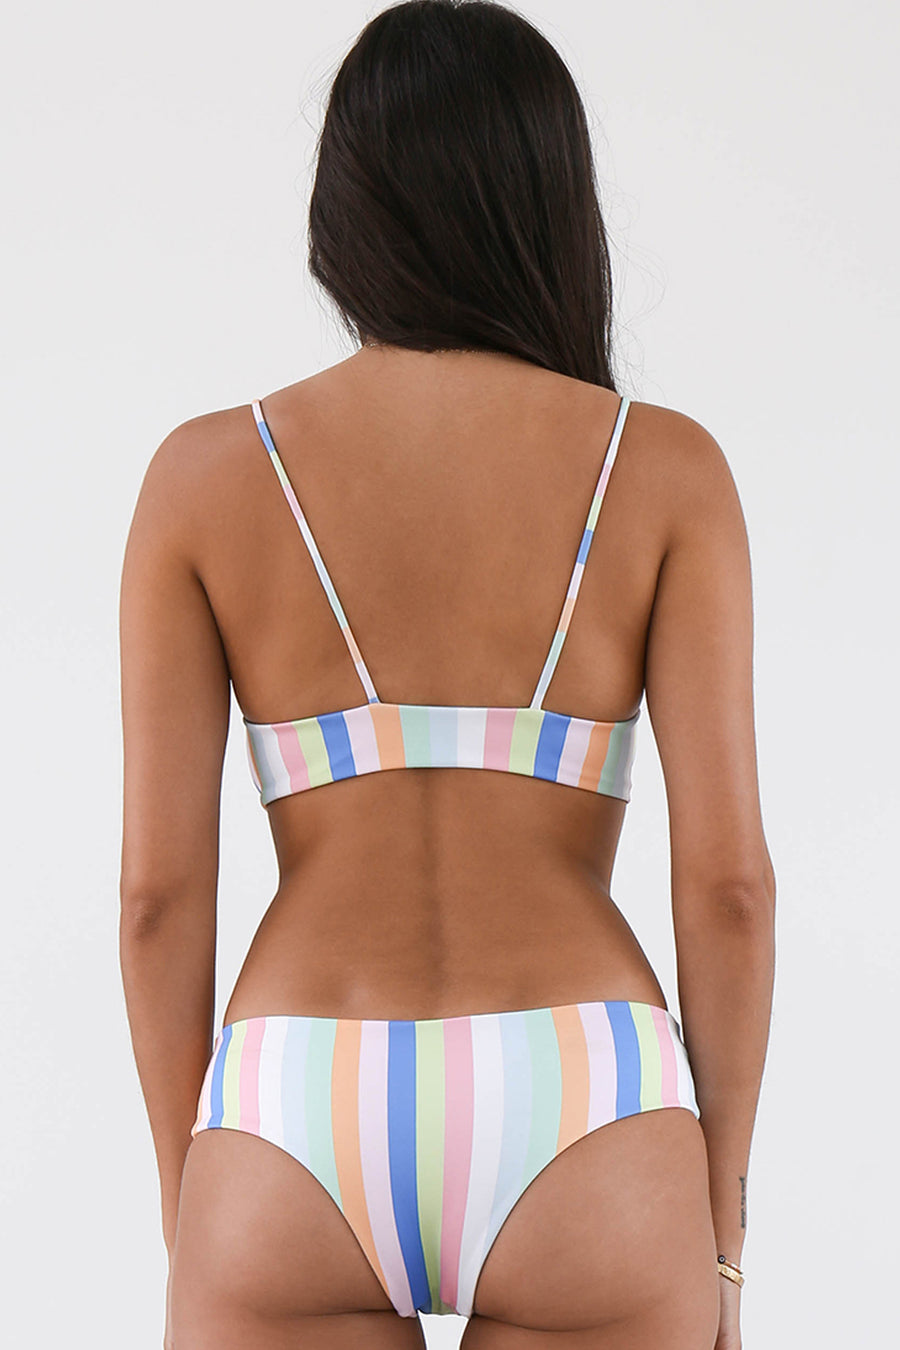 NirvanisSwim Aix Bikini Top in Summer Stripe